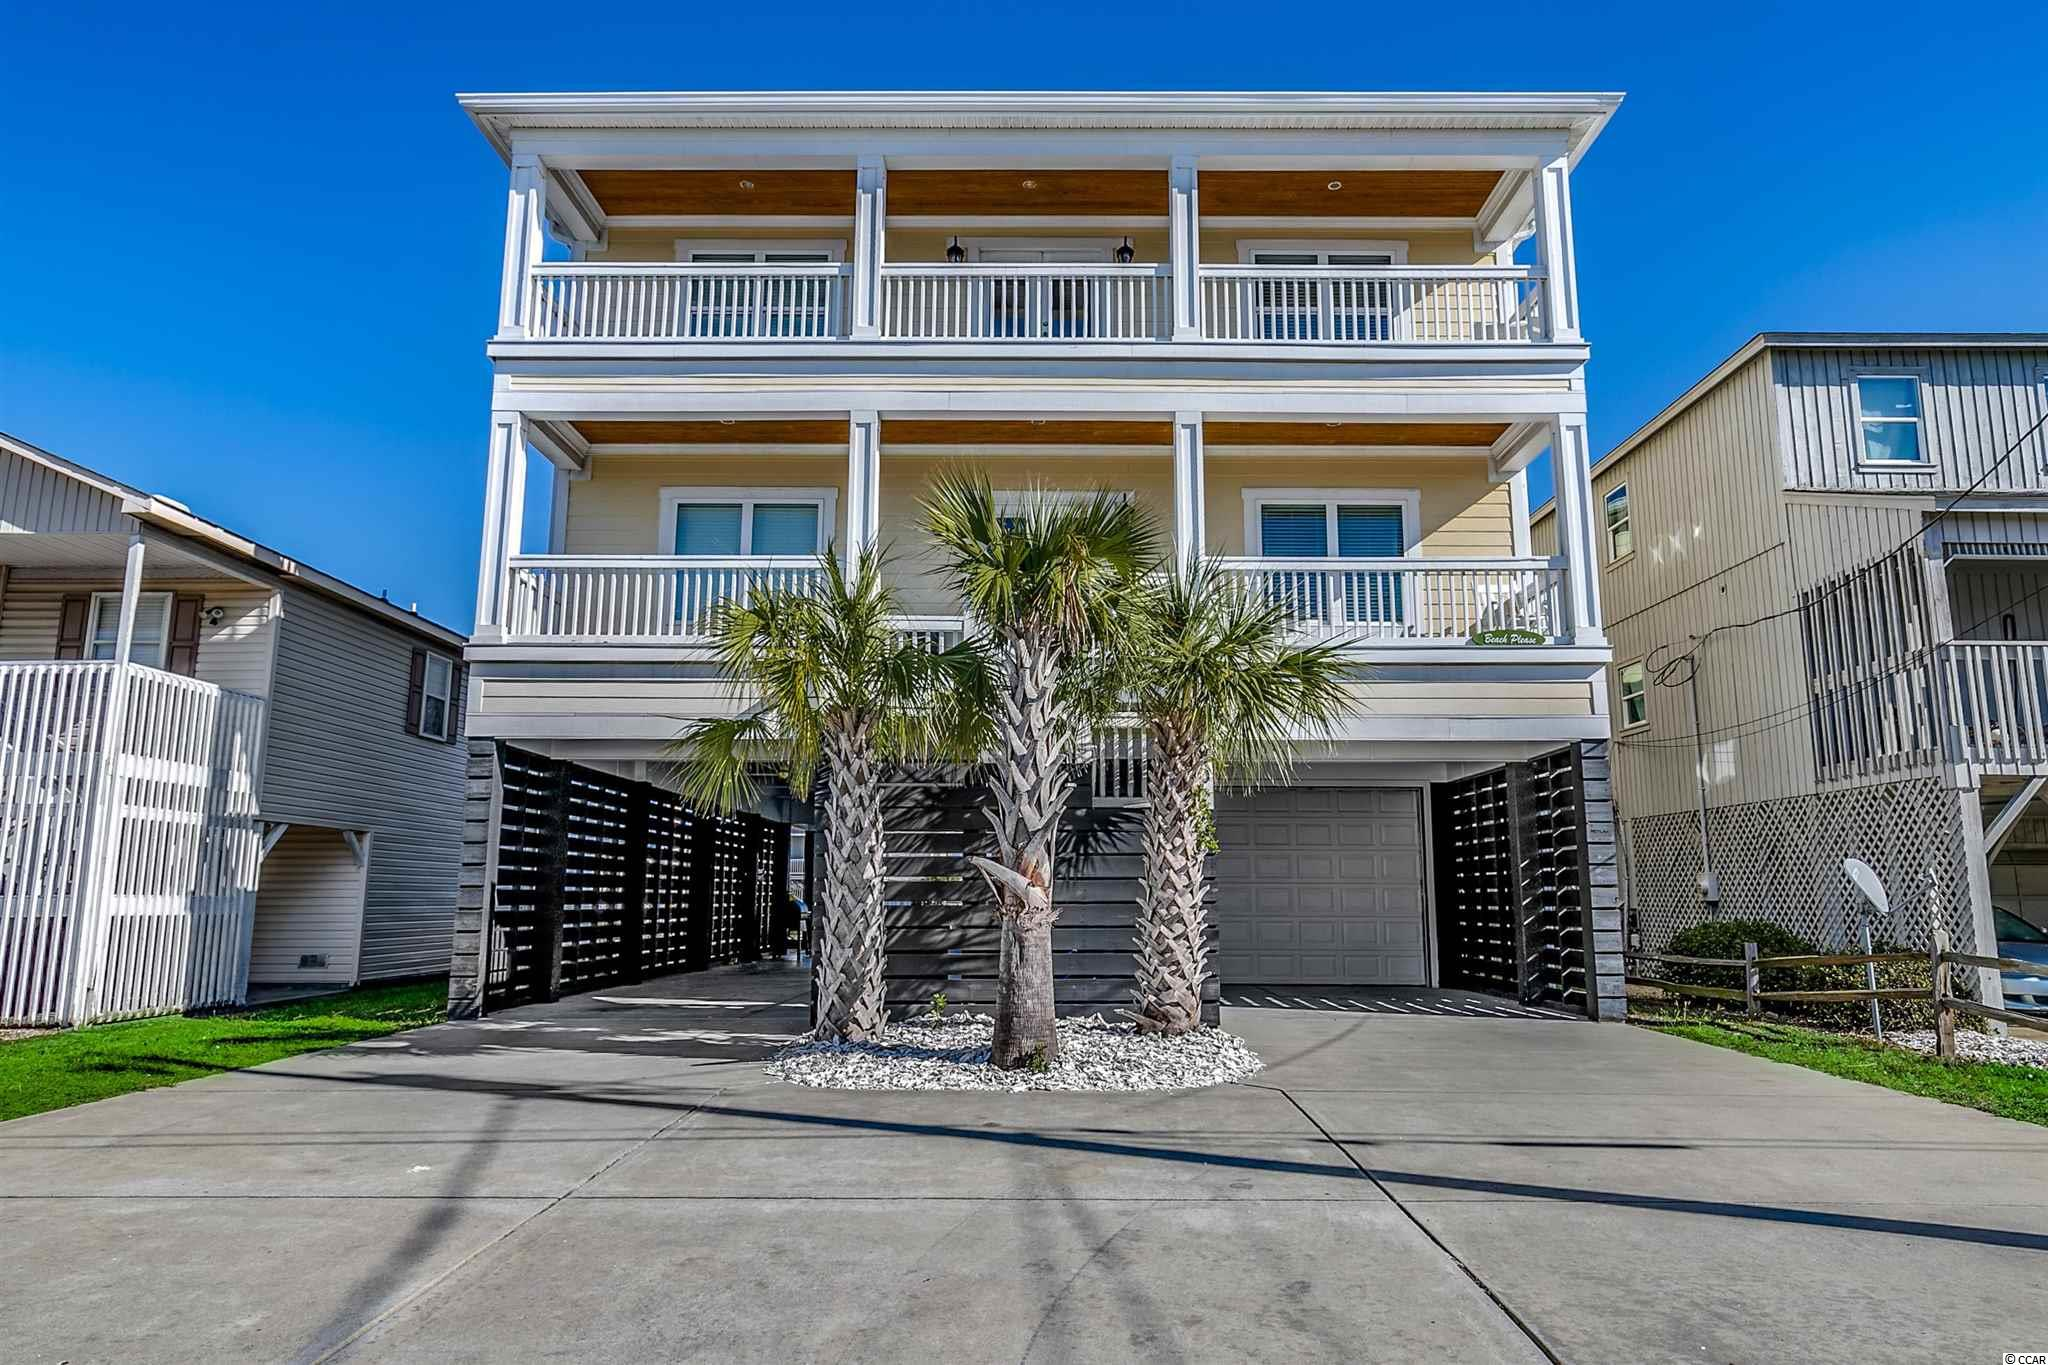 Walk to the beach! Here is your chance to own a gorgeous 6 bedroom and 6 1/2 bath raised beach home on the channel with ocean views. This beautiful property in Cherry Grove is a rental machine producing well over six figures annually. Sit back and enjoy the views from one of your four porches while you breathe in the salt air. This fully furnished home has everything that you will need including, outdoor furniture, hardwood floors, granite counter tops, custom shower, outdoor faucets on each deck to water your plants, beautiful back patio pavers and a custom bar on the ground level for entertaining to top it all off. This beach home was built to entertain!!! Priced to sell immediately! Don't miss your chance.